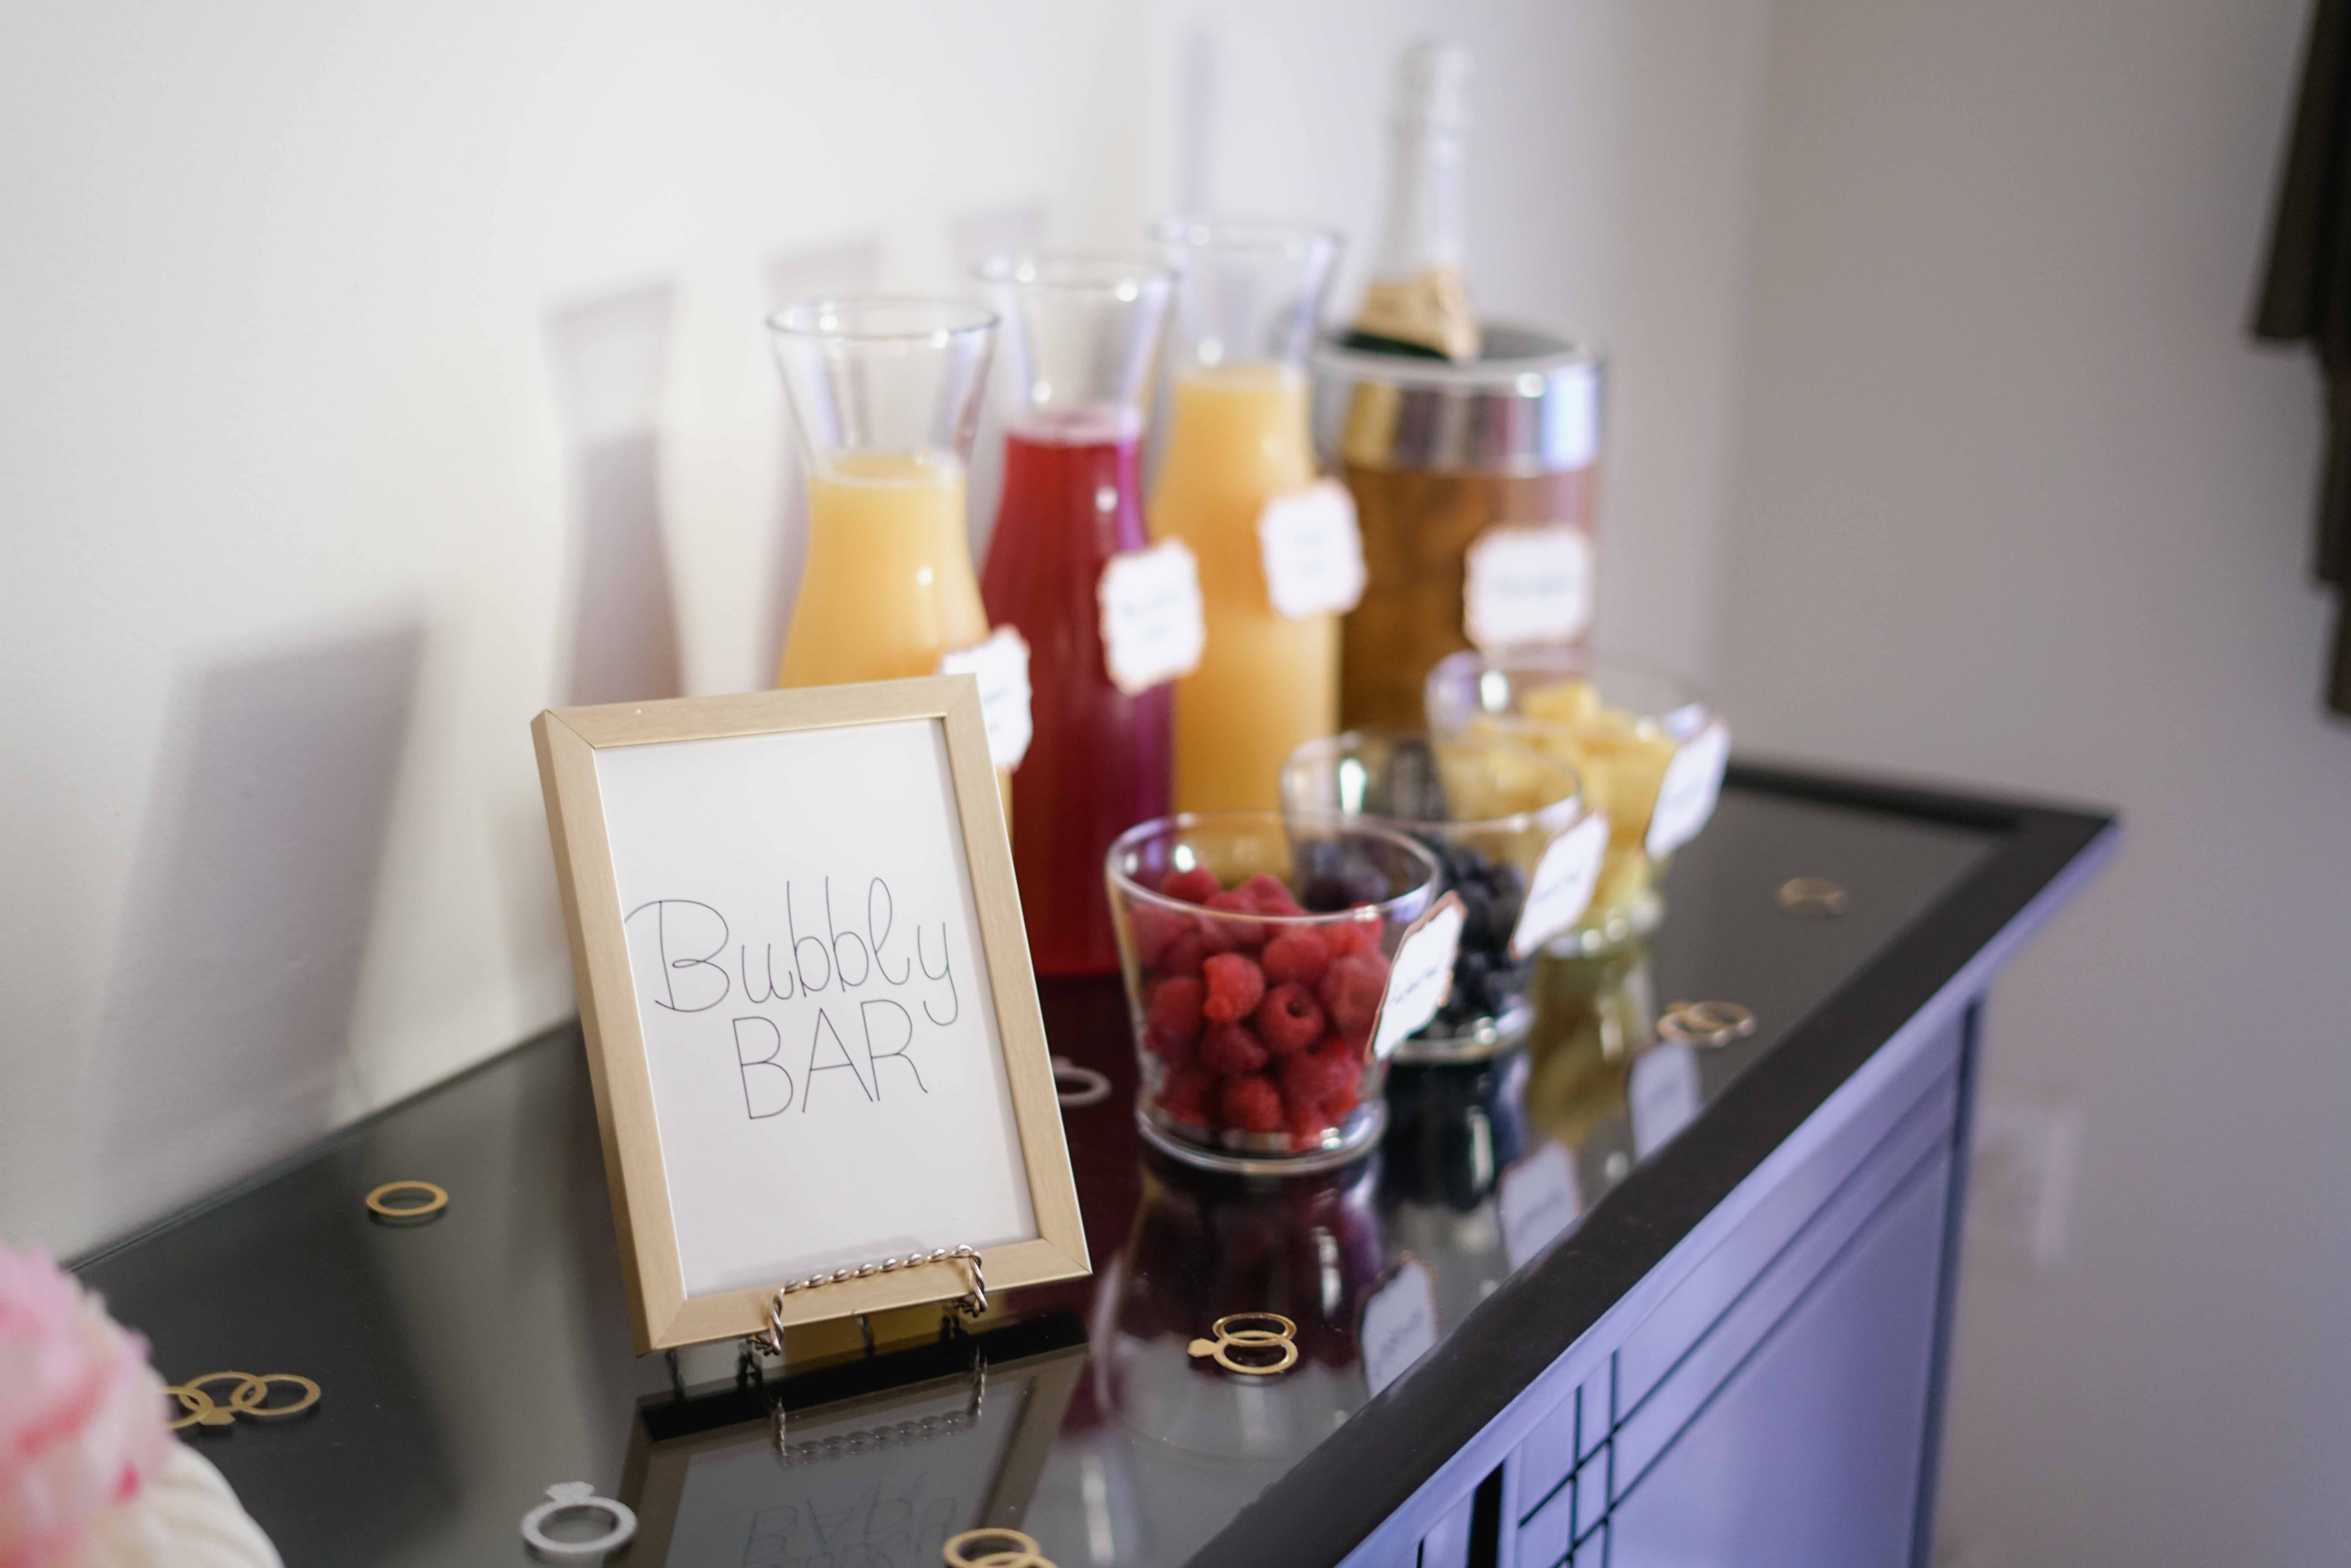 Bubbly Bar Sign With Several Assorted-color Liquid With Bottles on Top of Black Wooden Table